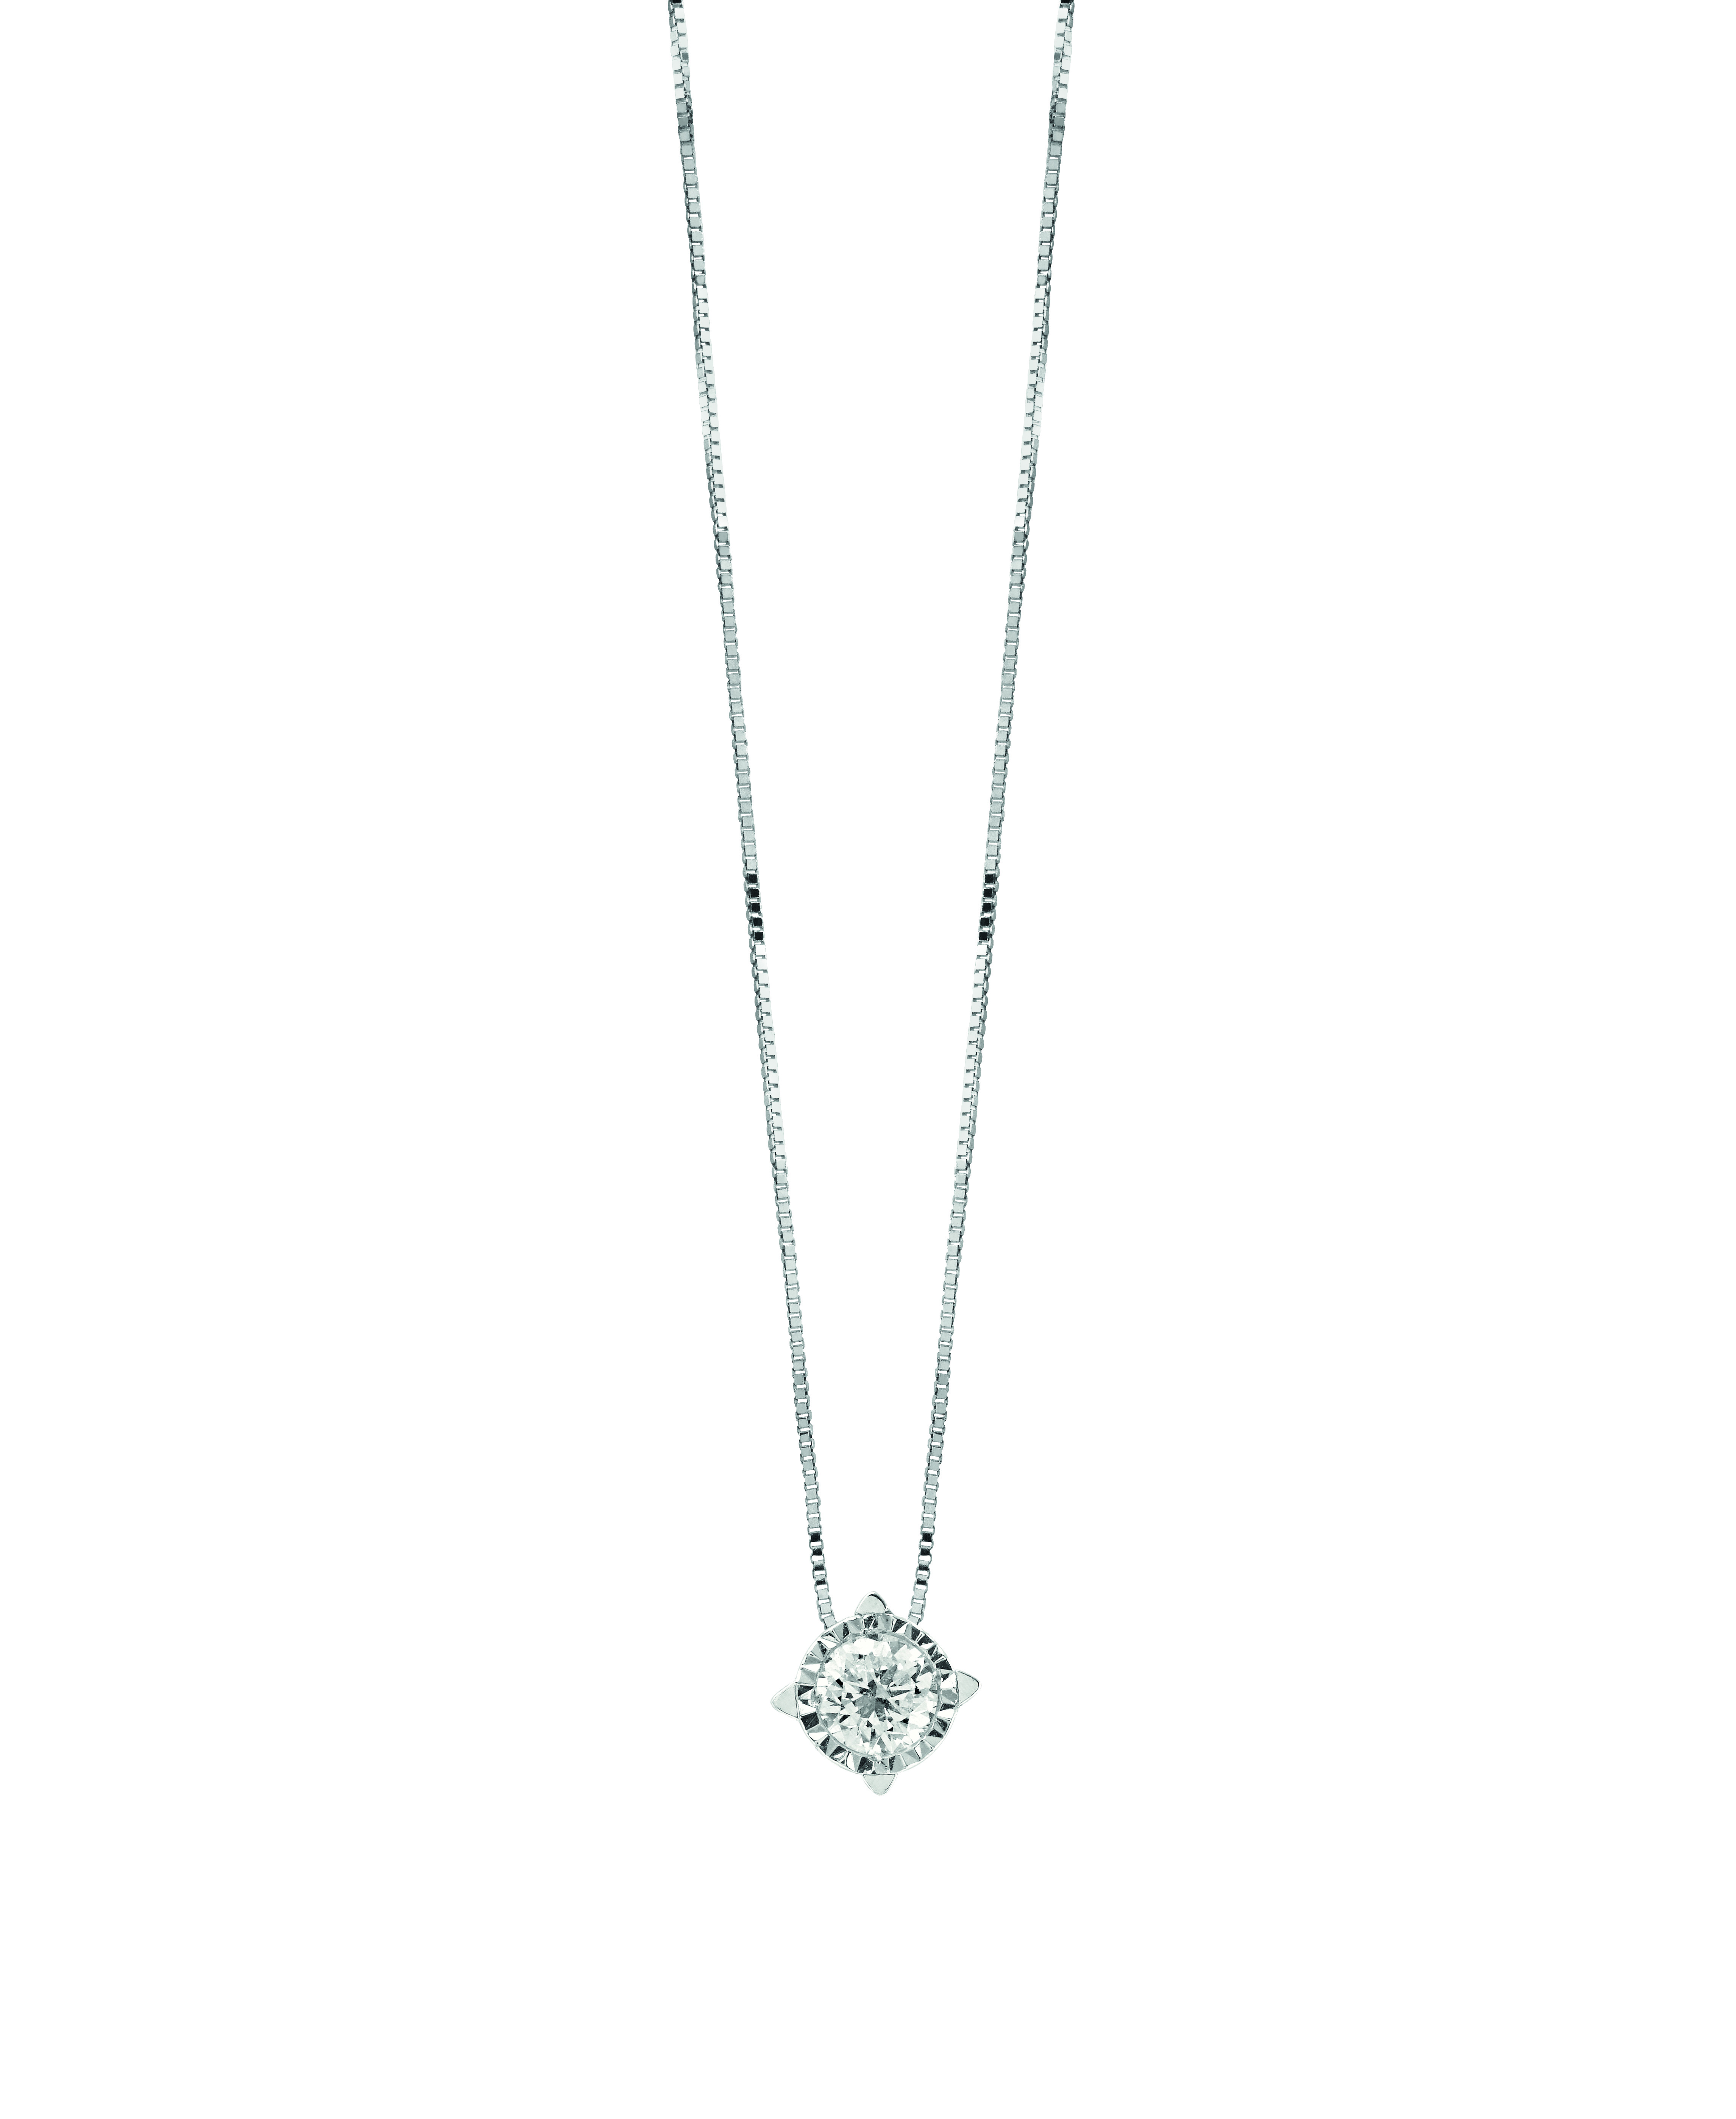 Bliss necklace Collier Point Light in White Gold 18kt and Diamonds 0,12 ct 20075347